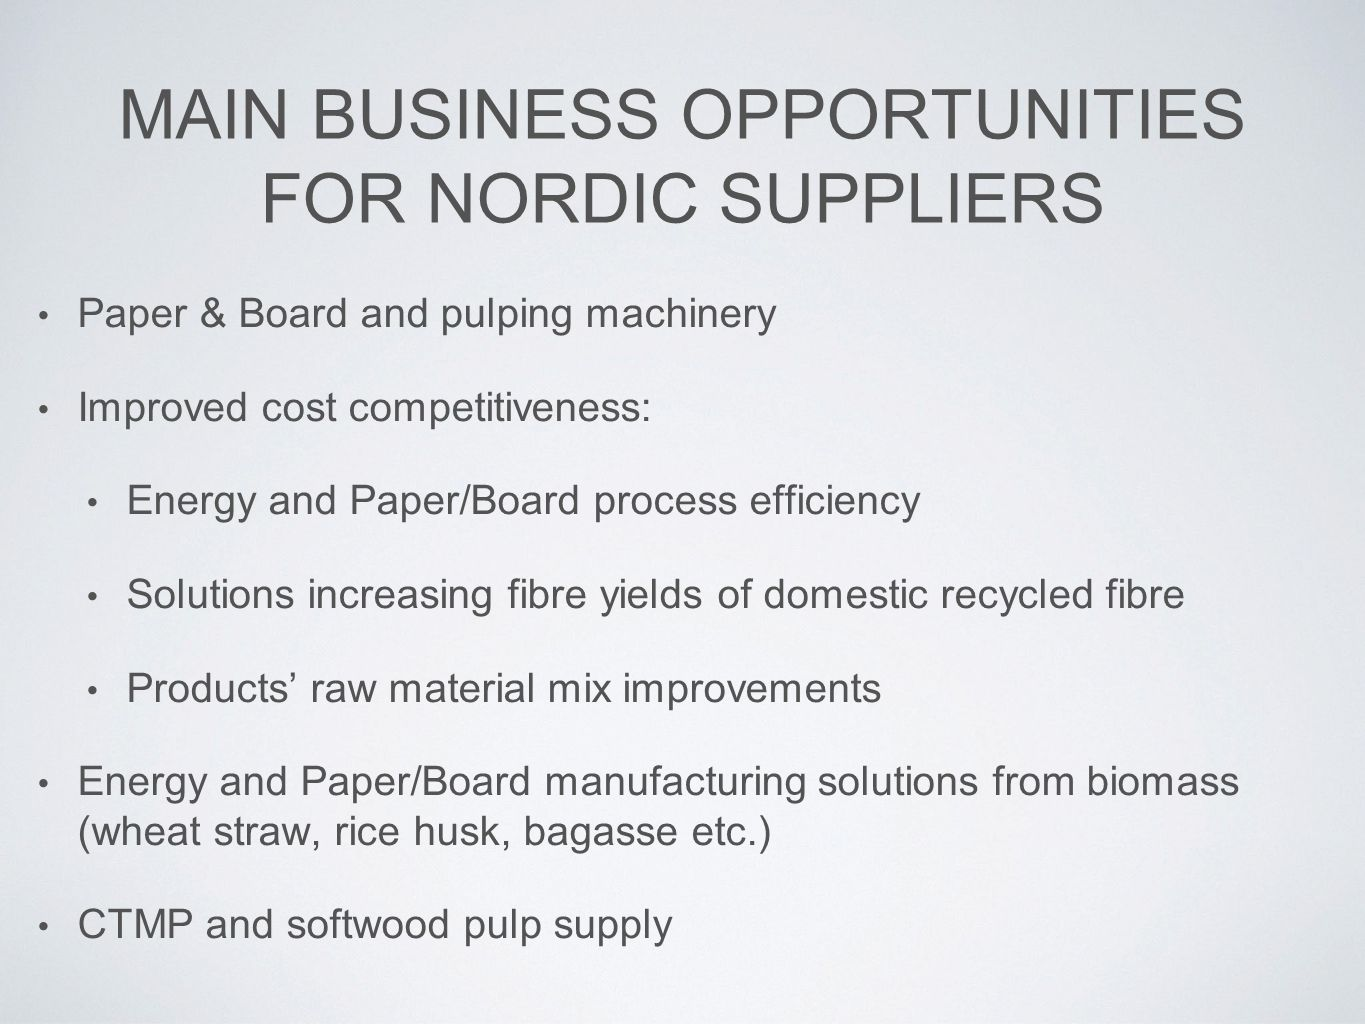 MAIN BUSINESS OPPORTUNITIES FOR NORDIC SUPPLIERS